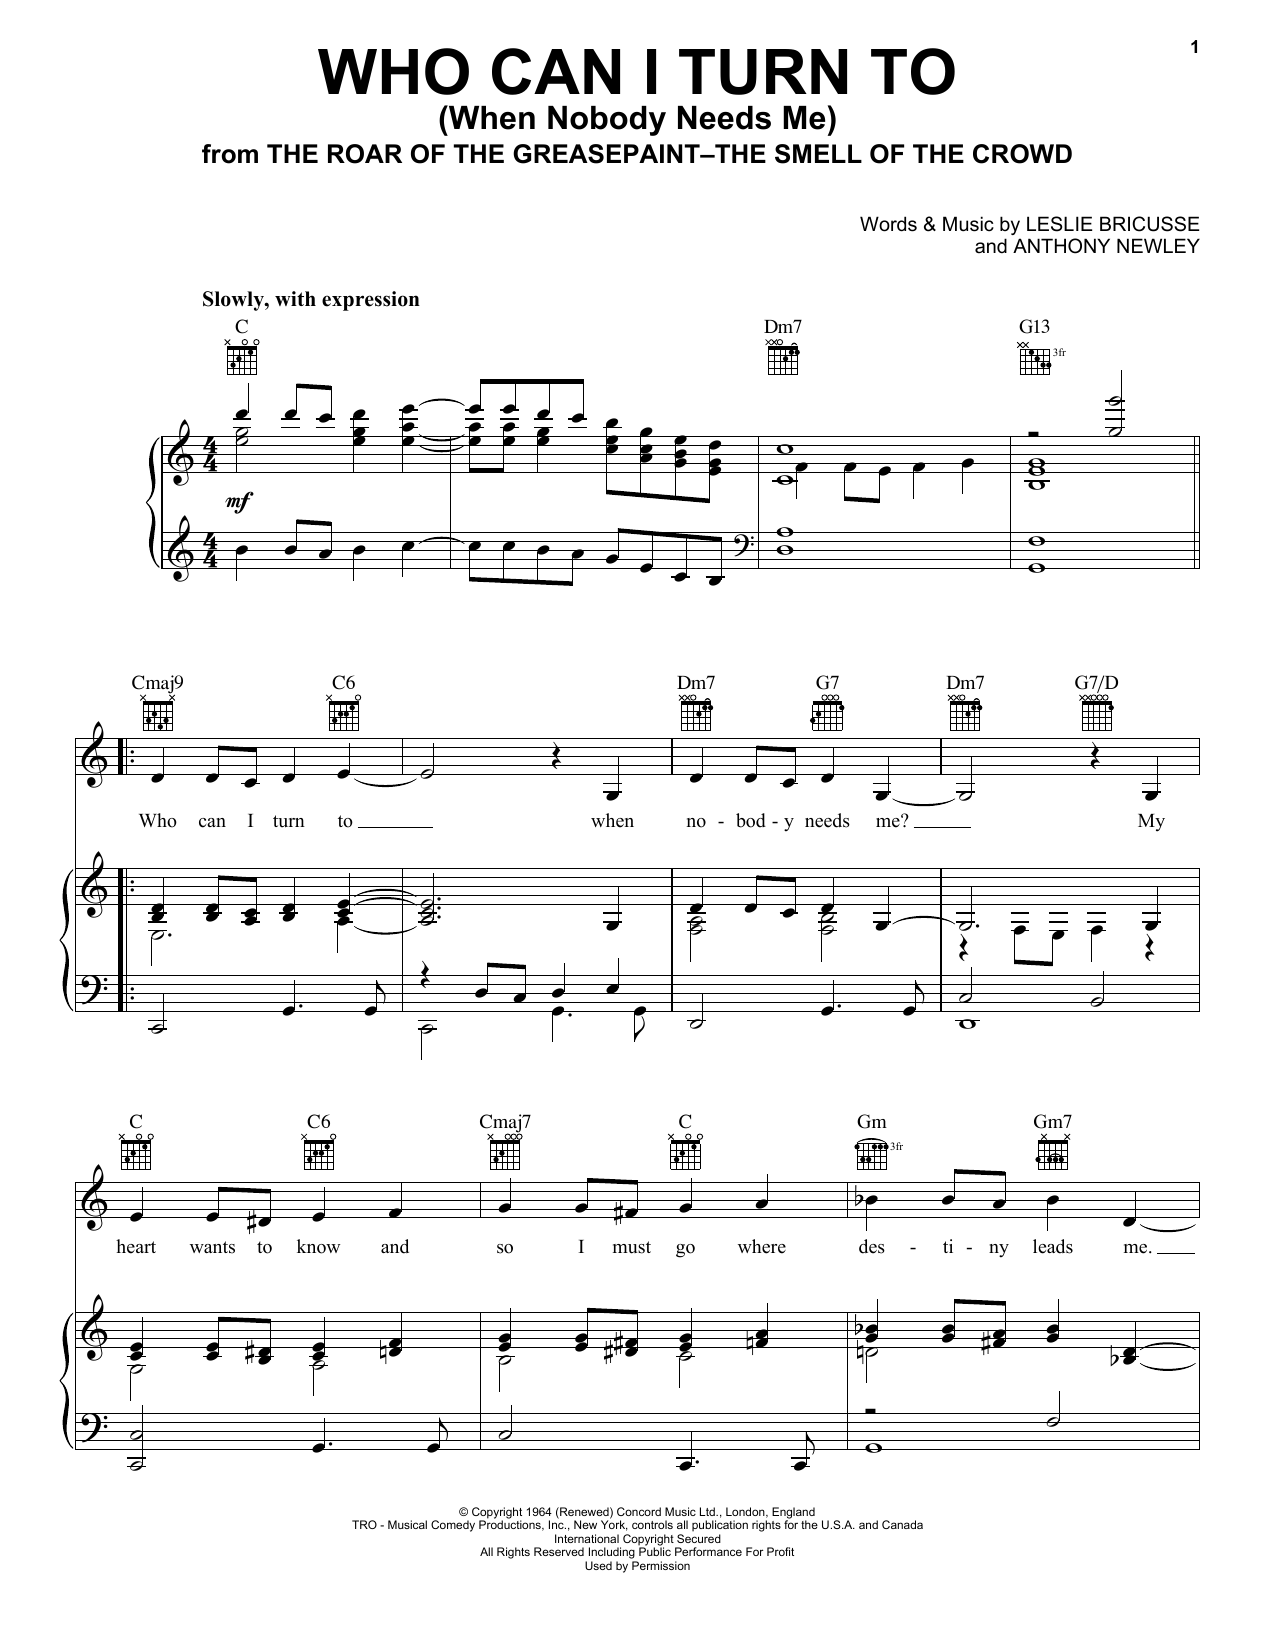 Who Can I Turn To (When Nobody Needs Me) sheet music for voice, piano or guitar by Leslie Bricusse